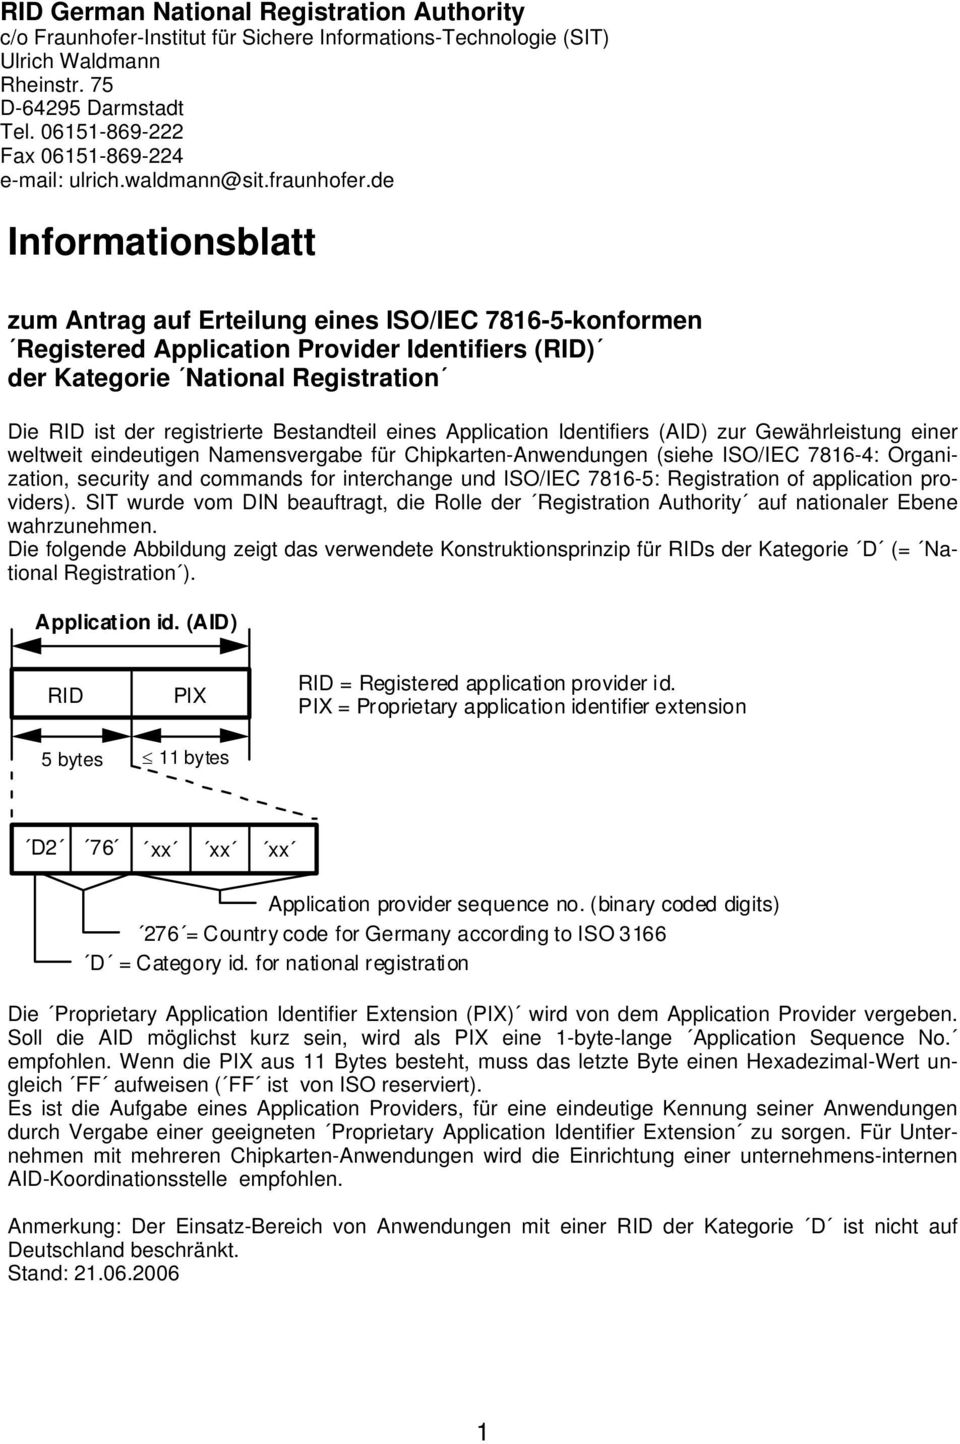 interchange und ISO/IEC 7816-5: Registration of application providers). SIT wurde vom DIN beauftragt, die Rolle der Registration Authority auf nationaler Ebene wahrzunehmen.